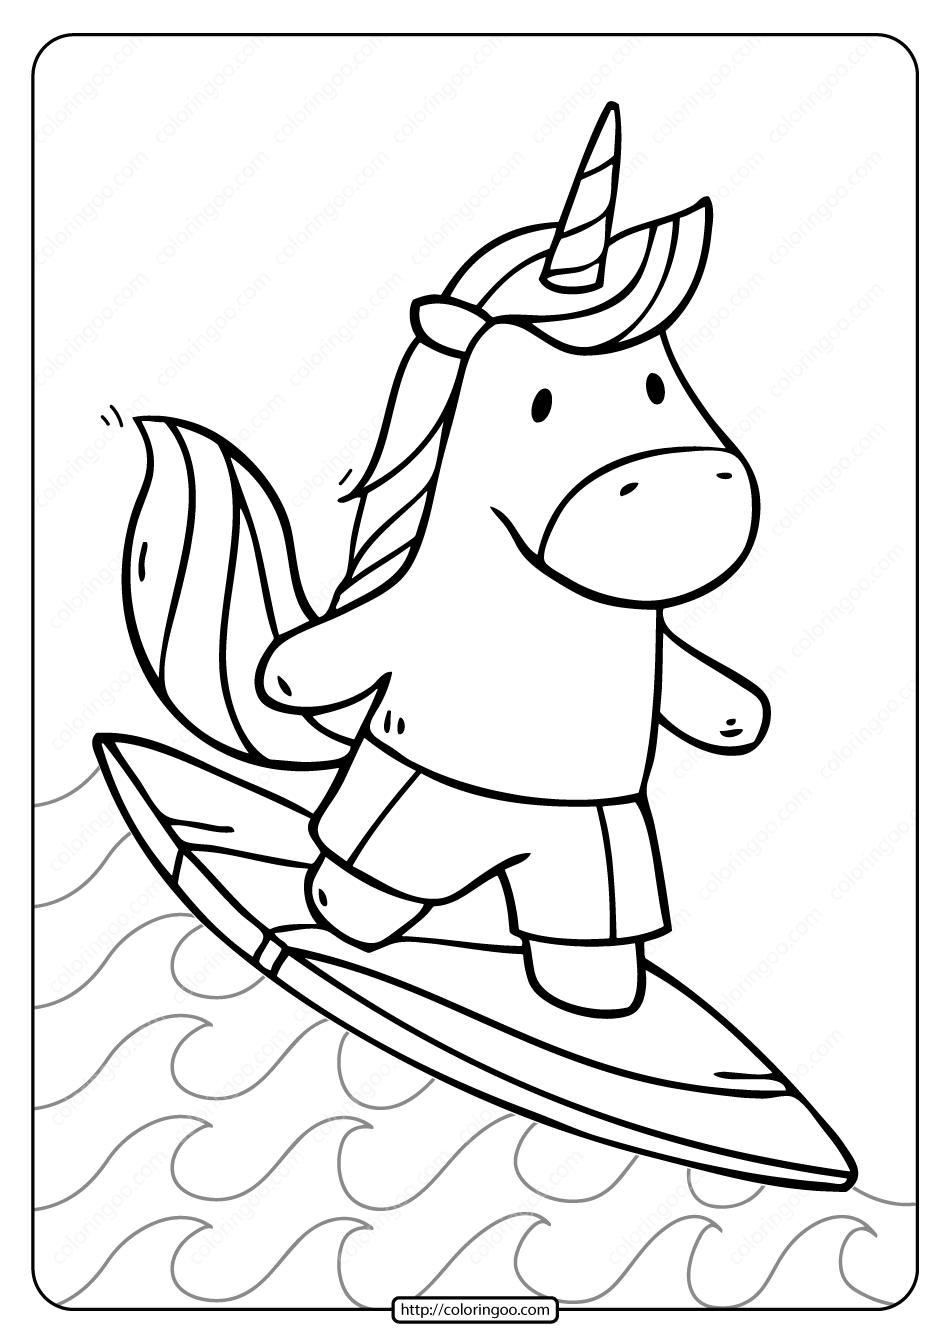 Free Printable Unicorn Surfer Pdf Coloring Page In 2021 Unicorn Coloring Pages Unicorn Printables Coloring Pages